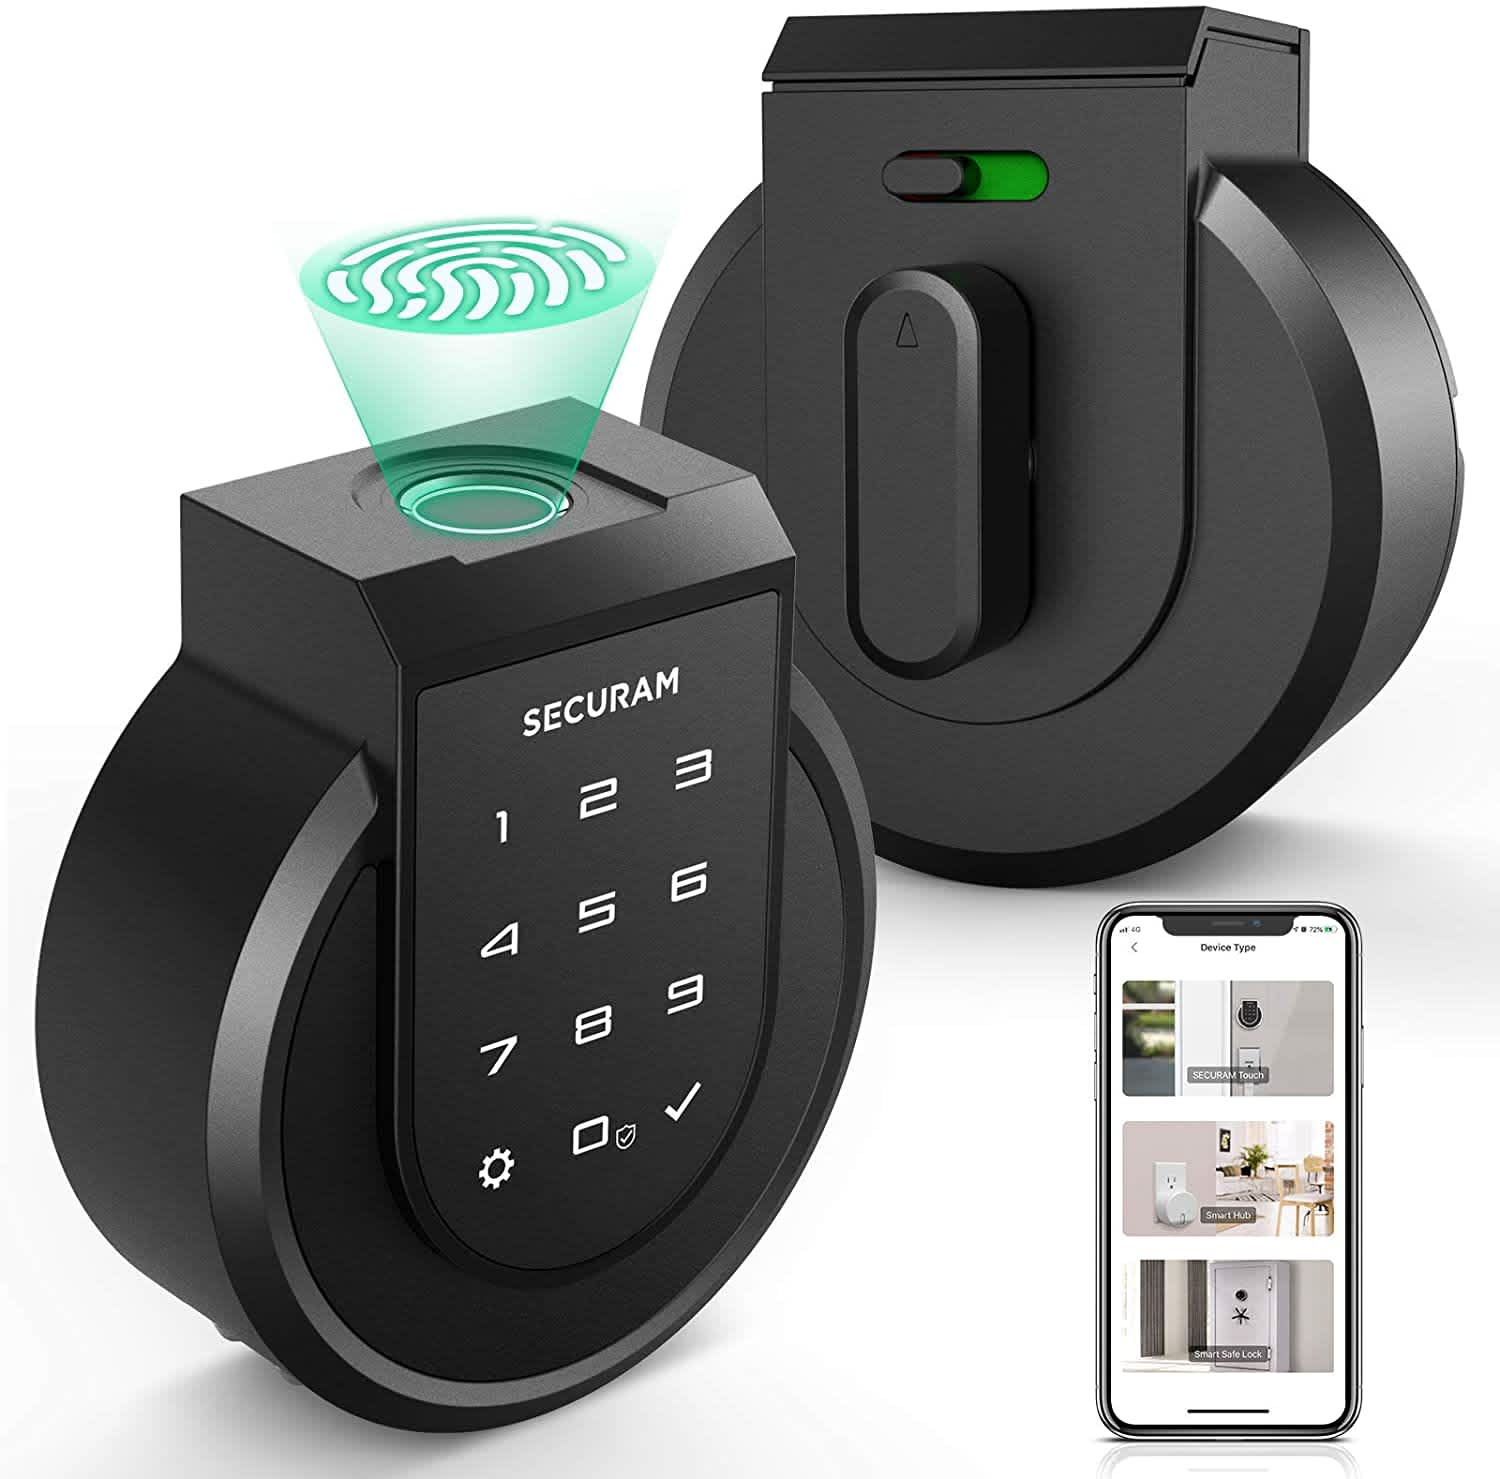 Securam Touch Fingerprint Smart Deadbolt